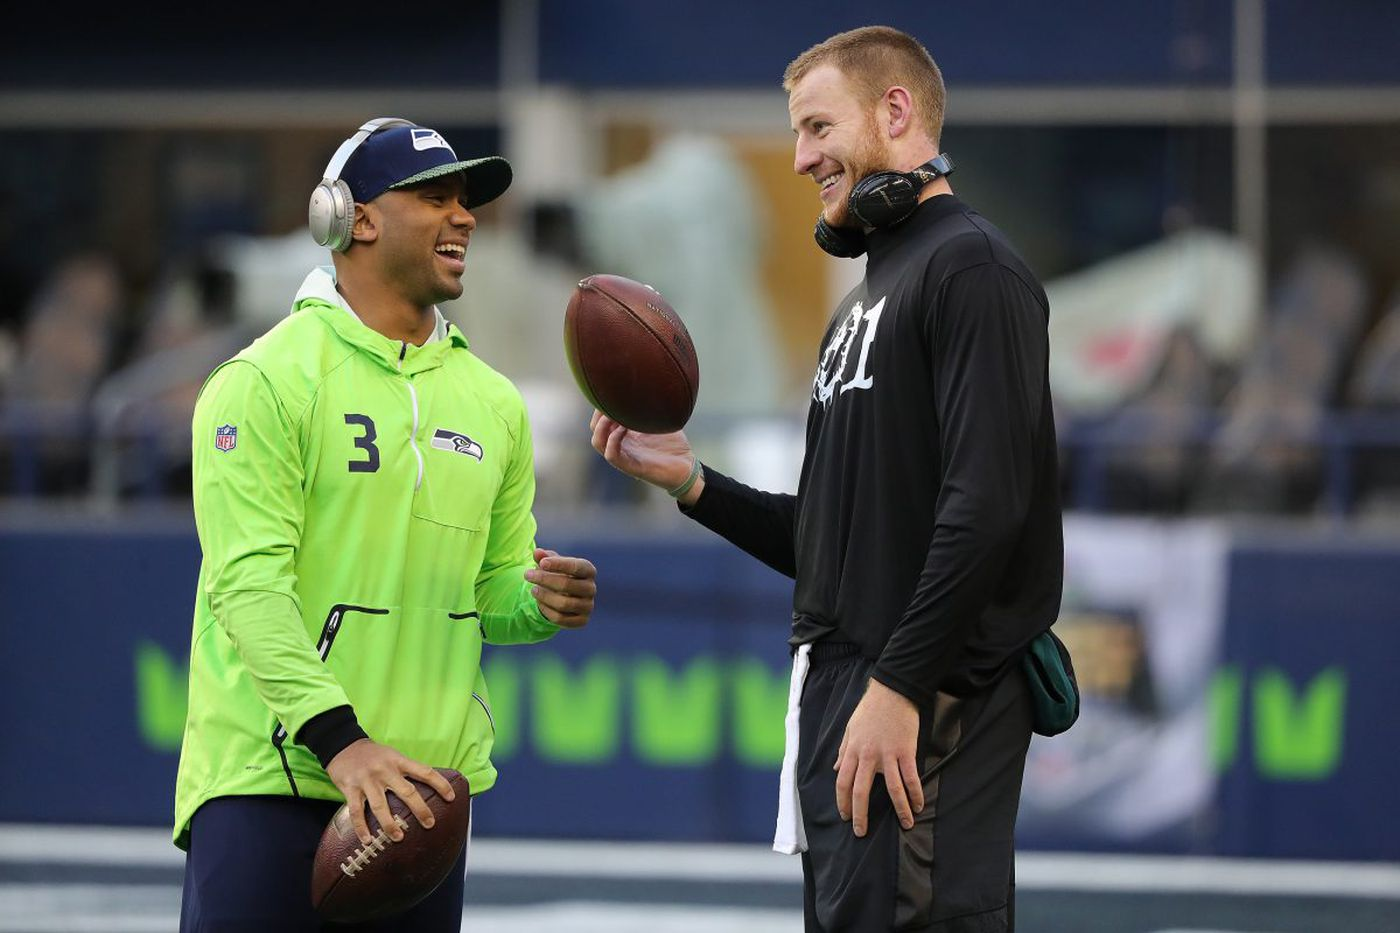 From J.J. Watt to Russell Wilson to 'Snacks,' support for Carson Wentz